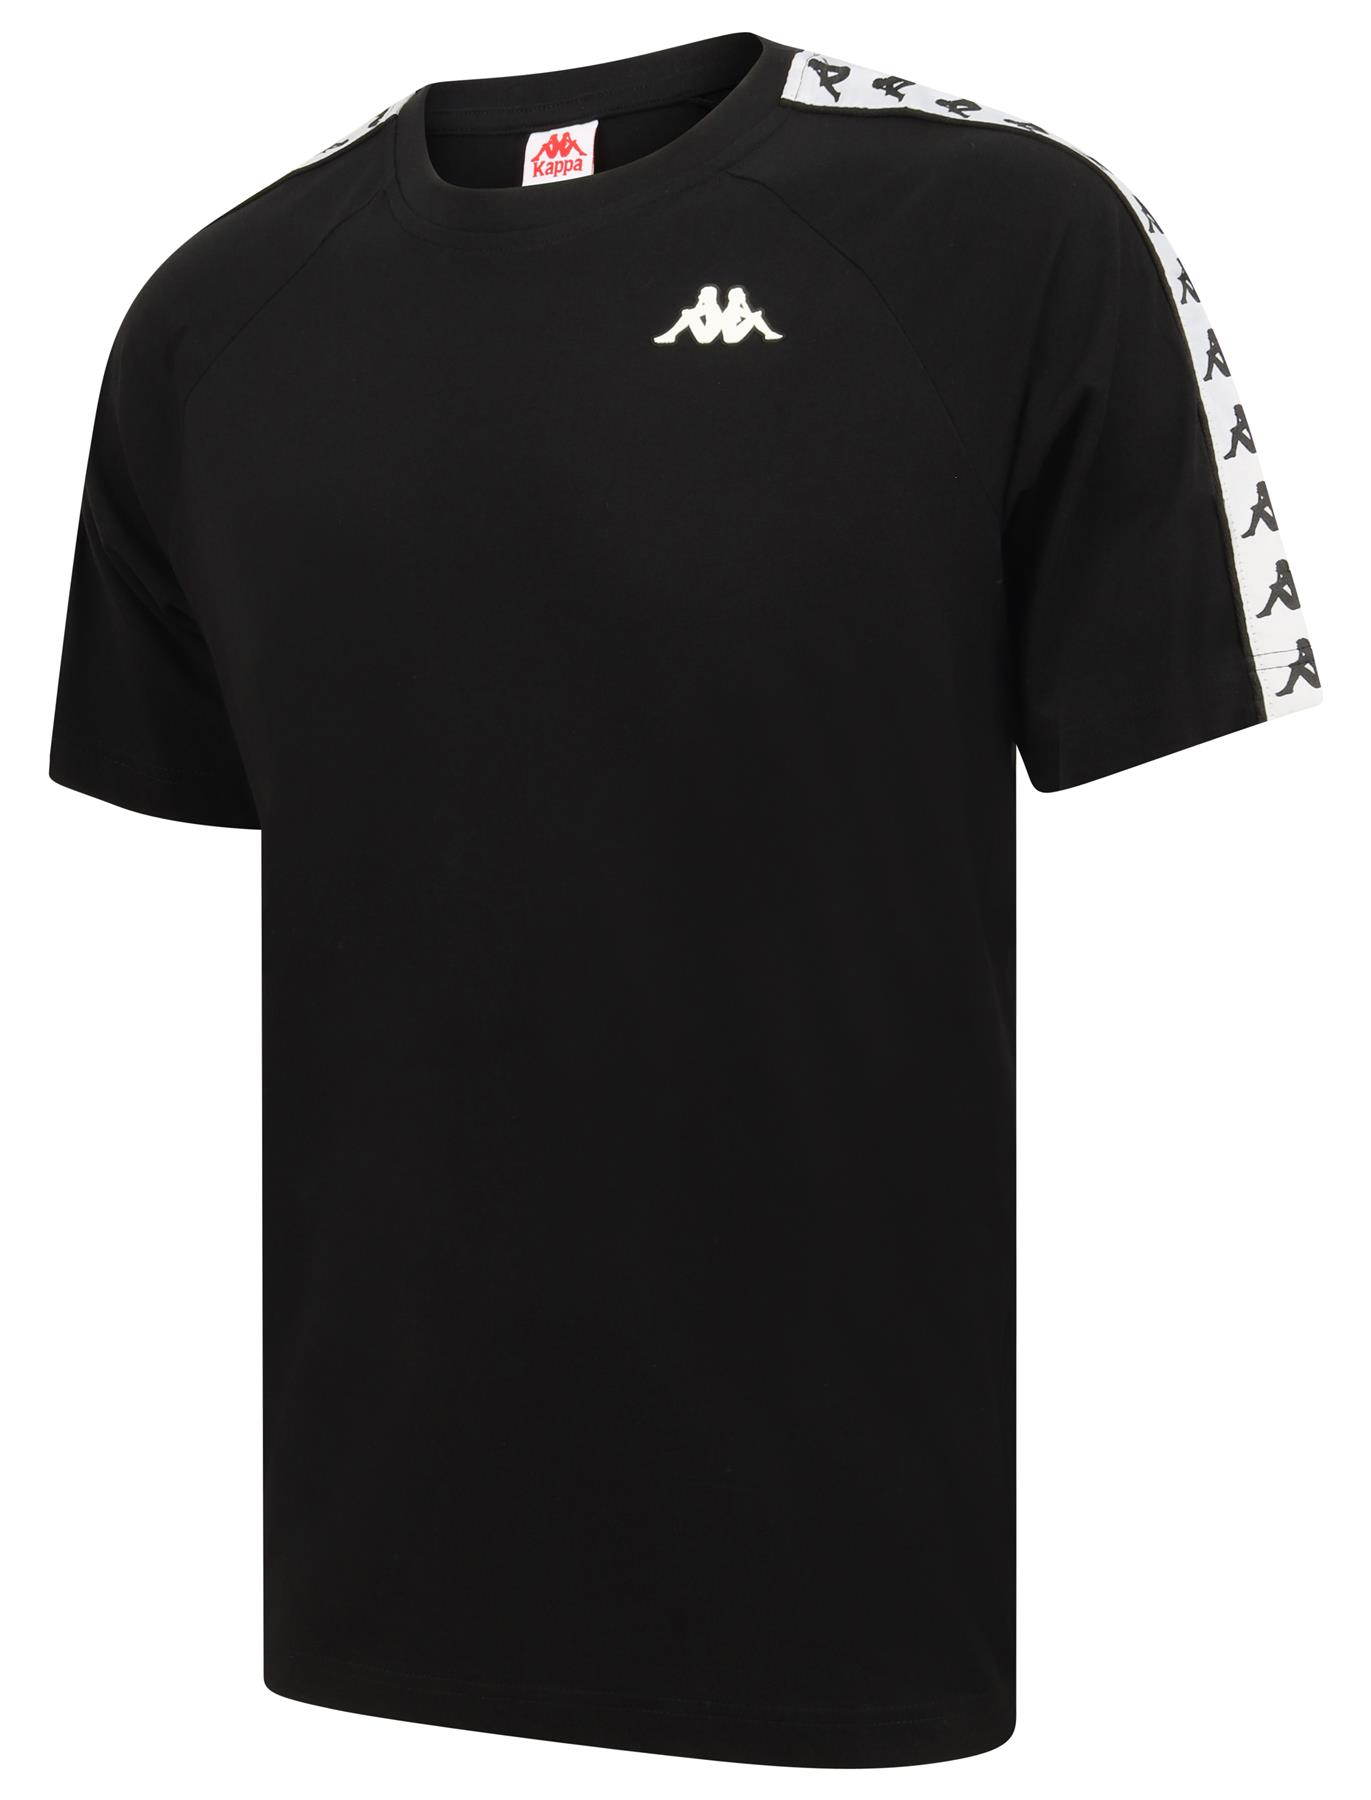 2 Pieces Pack KAPPA Men/'s T-Shirts Round and V Neck Black//White